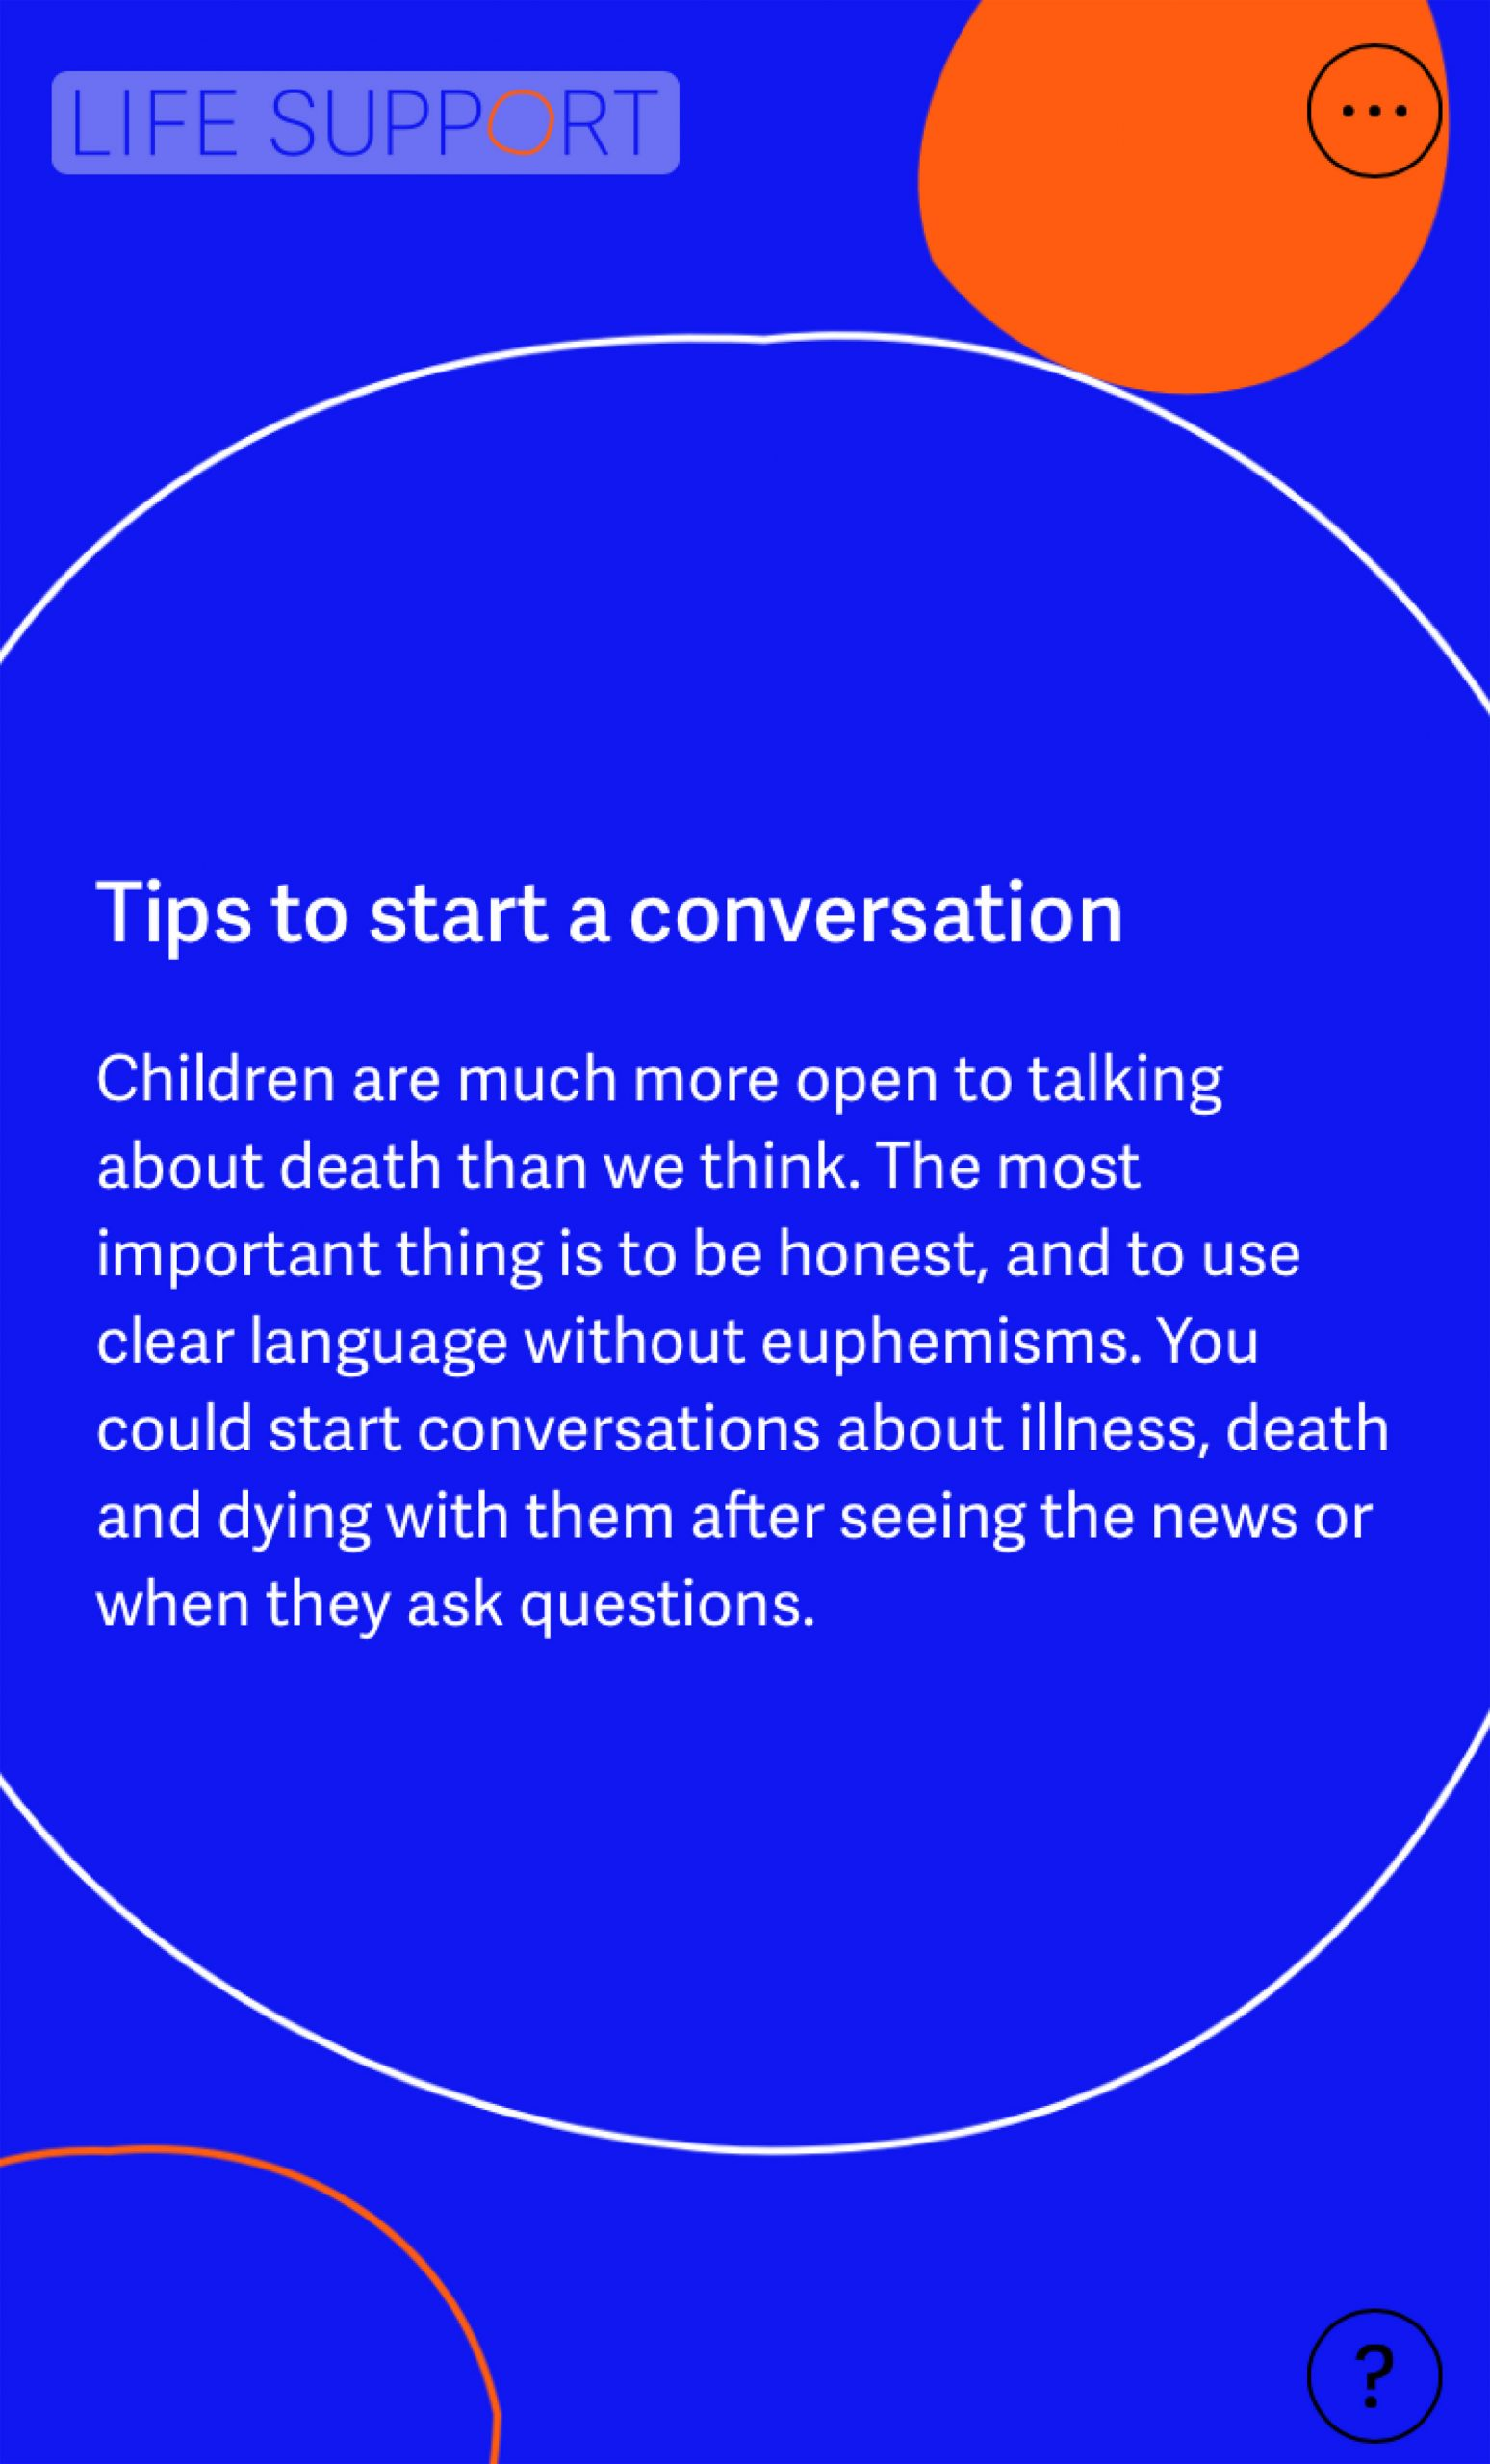 Tips to start a conversation with children about end of life